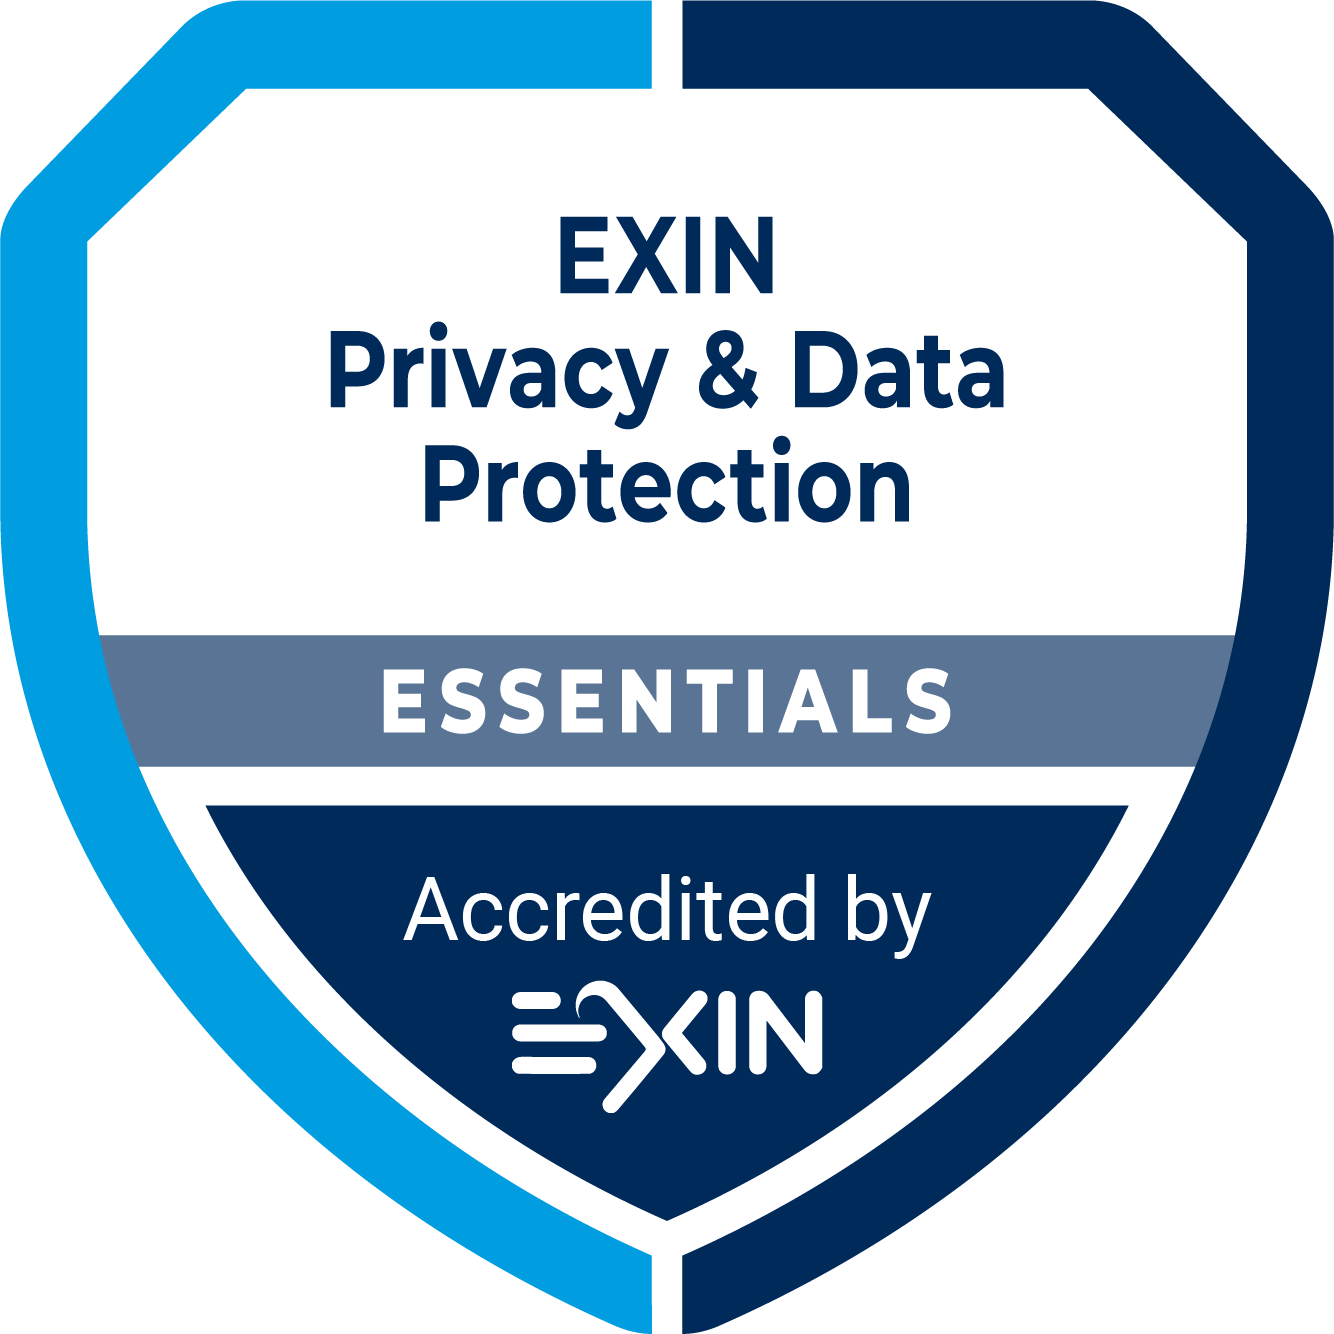 EXIN PDPE